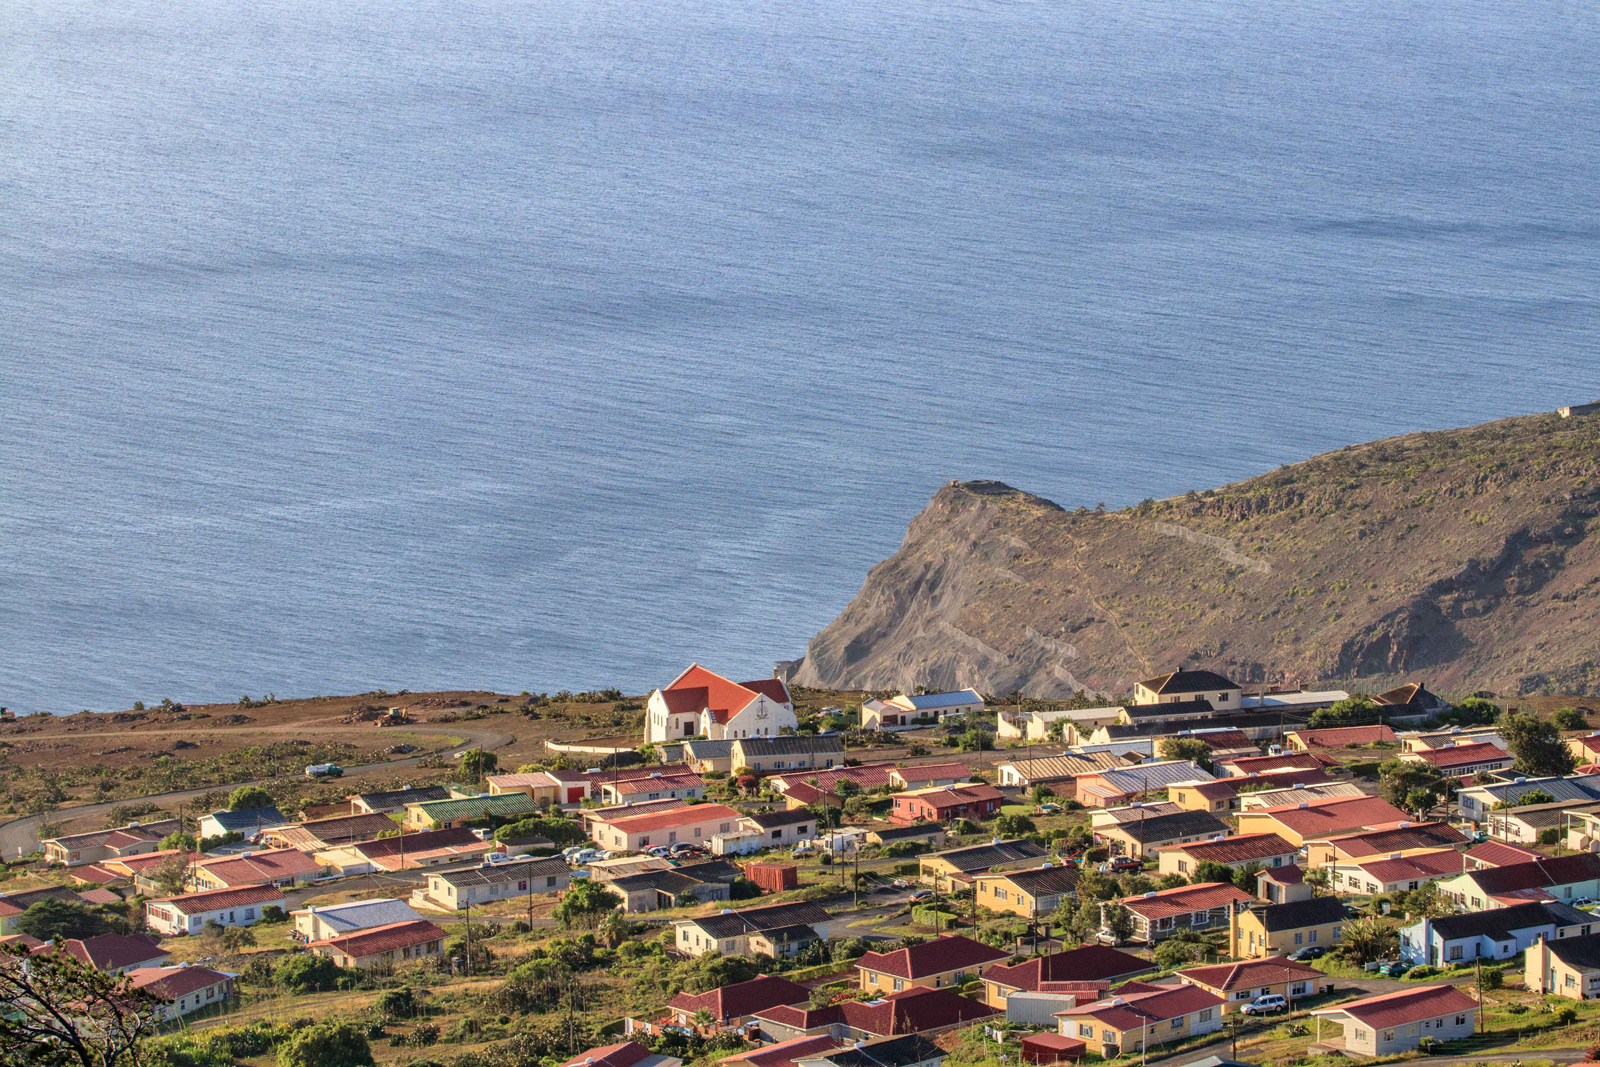 Residential area on St. Helena island